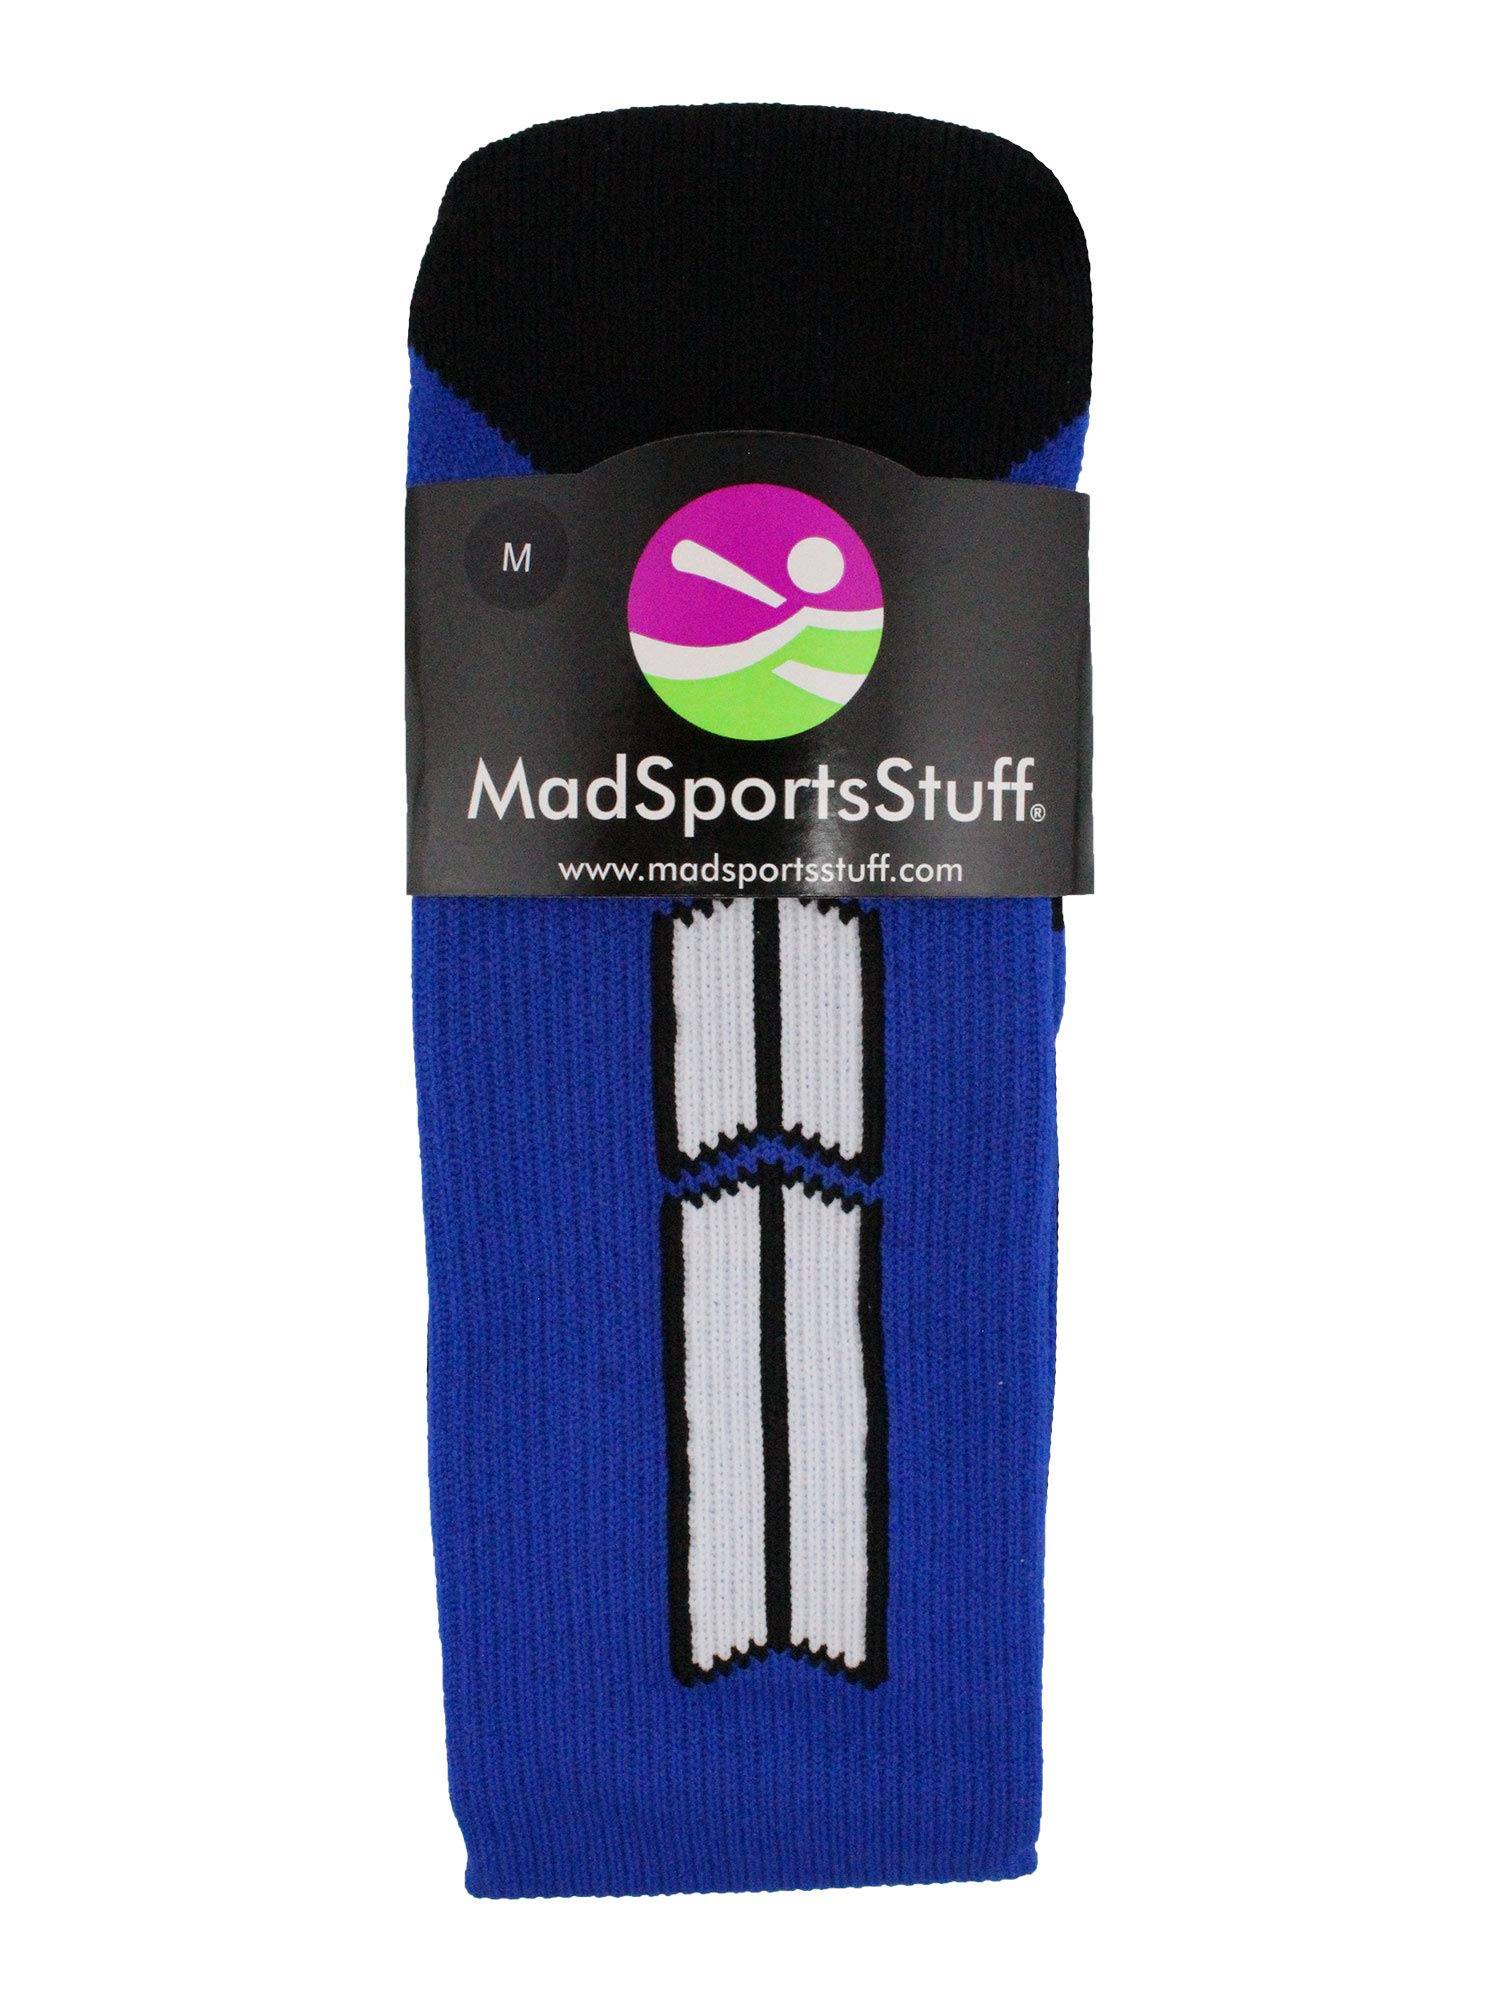 MadSportsStuff Royal/White Player Id Over The Calf Number Socks (#47, Large) by MadSportsStuff (Image #3)